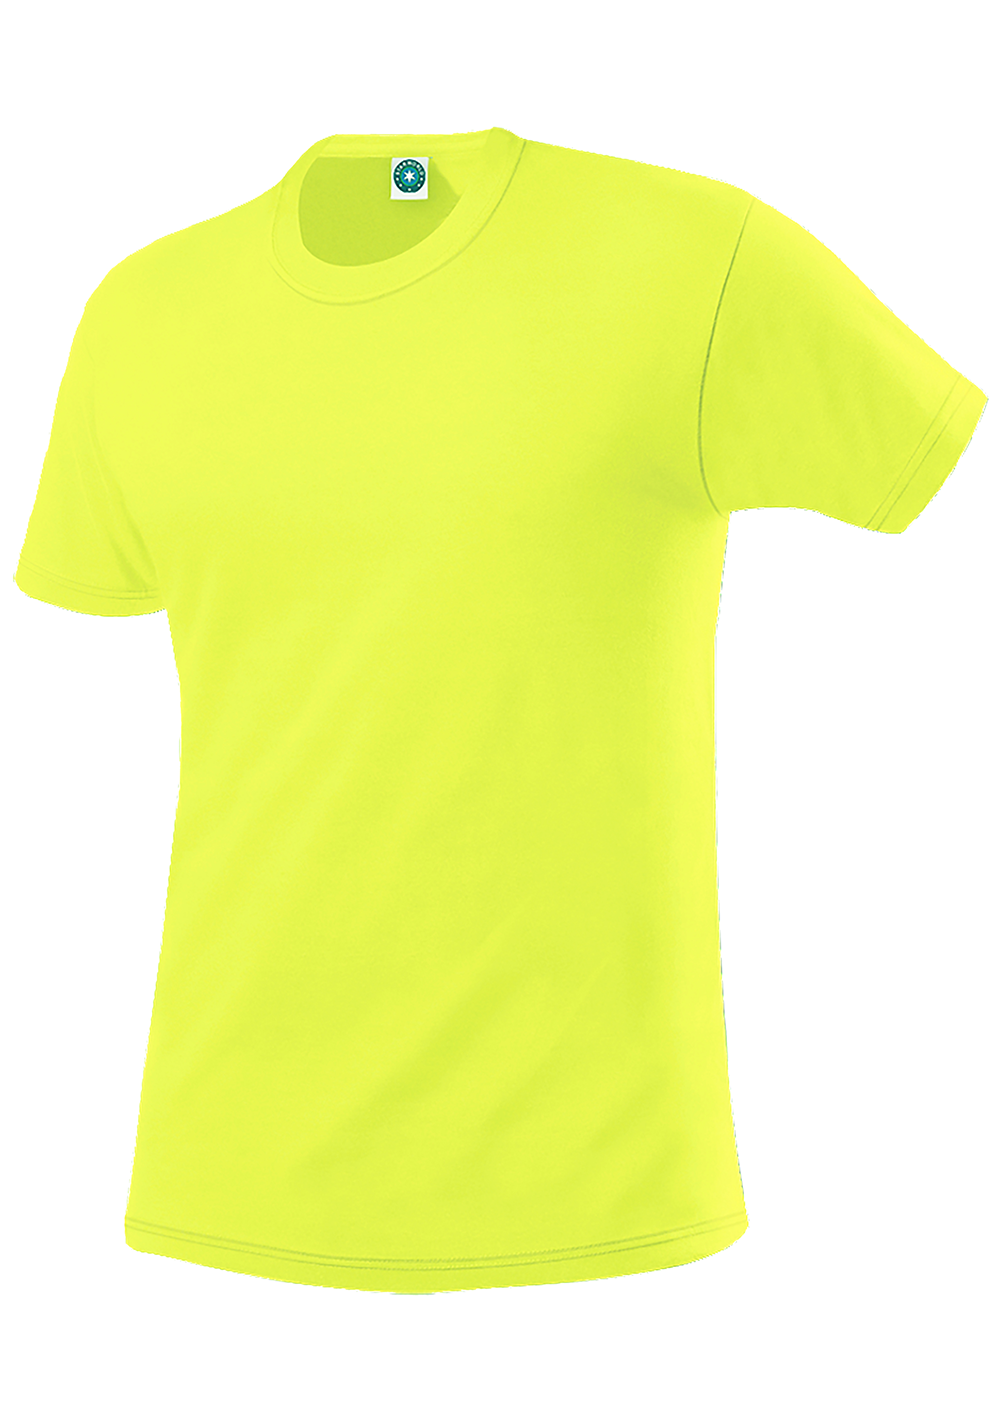 SW365N-64-FlYellow.png